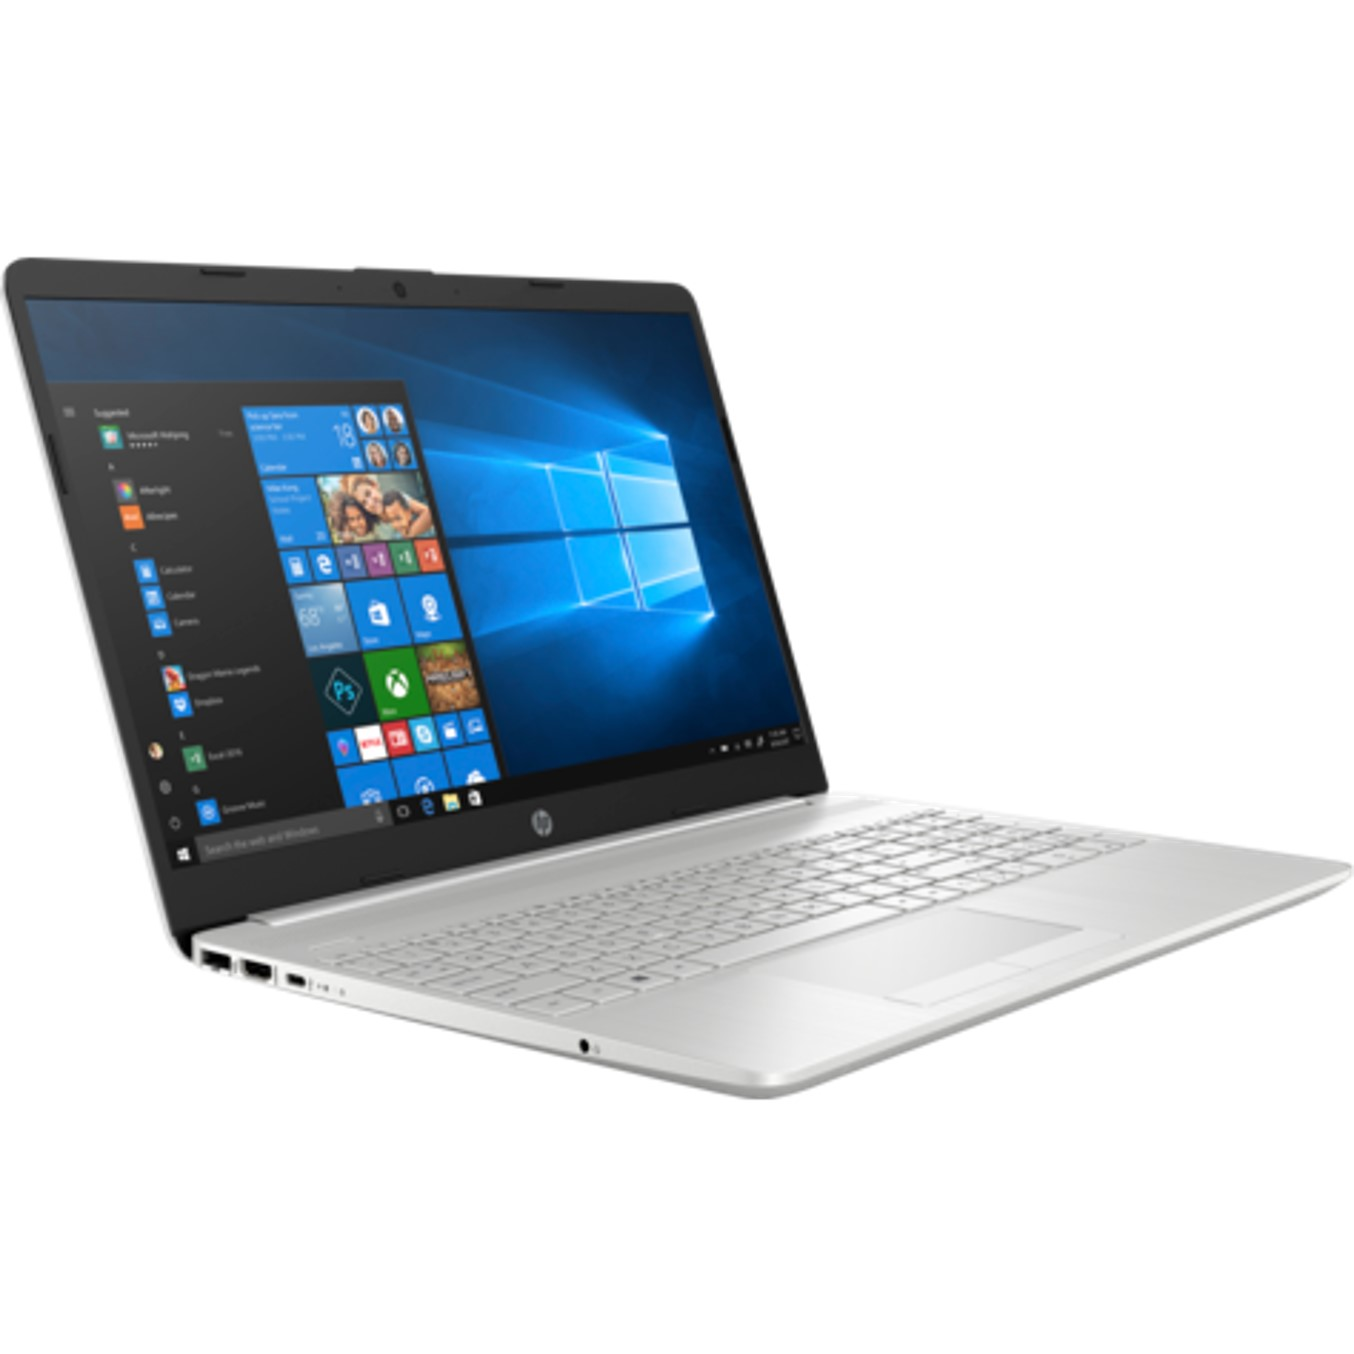 "PORTATIL HP NOTEBOOK 15-DW0027NS I3-7020U 15.6"" 4GB / SSD128GB / WIFI / BT / W10"